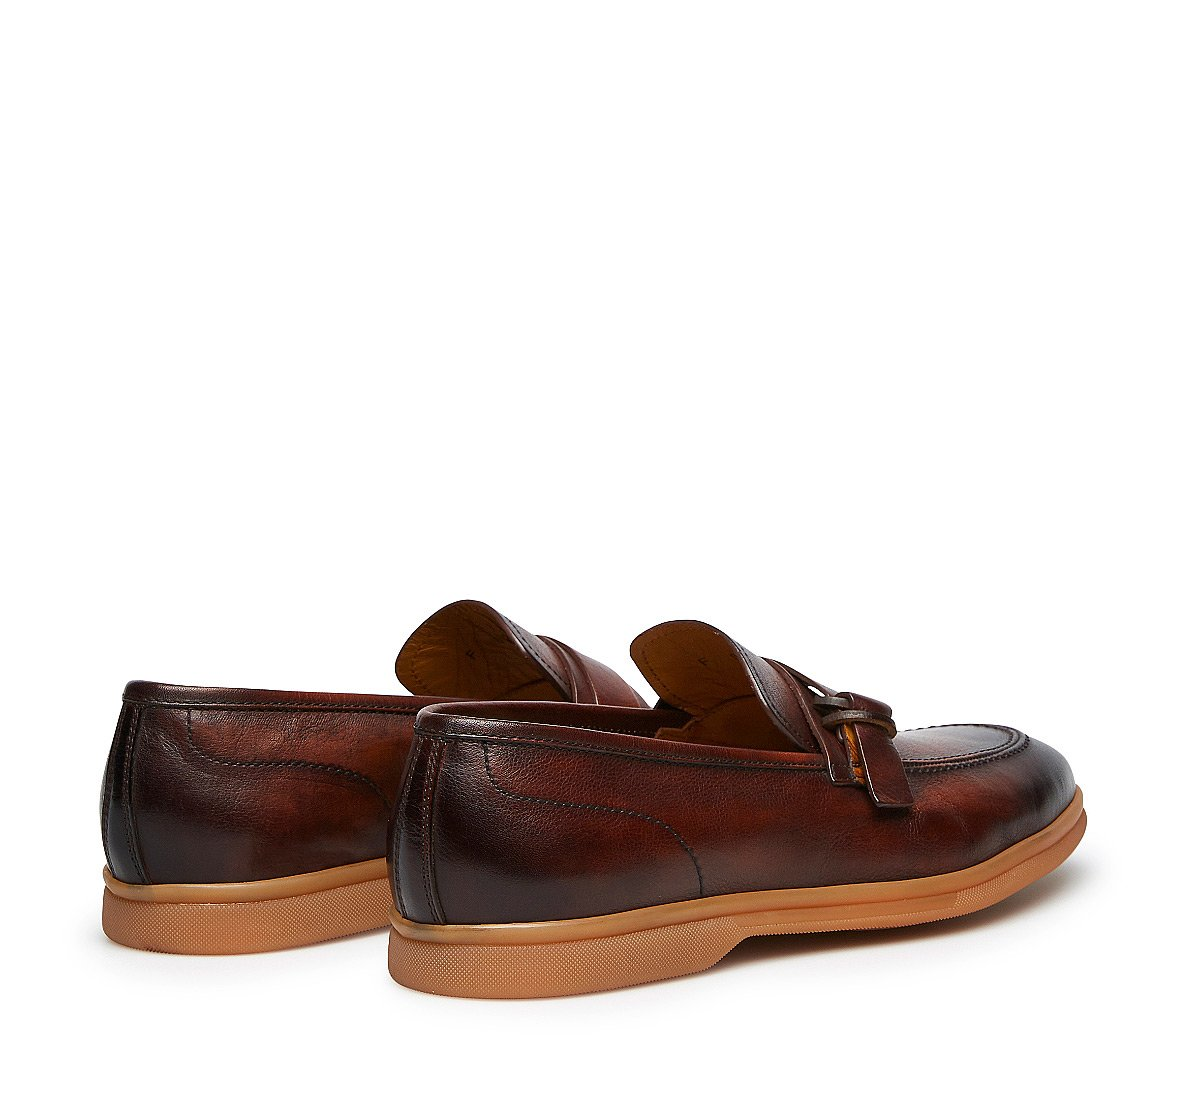 RAMSEY moccasins